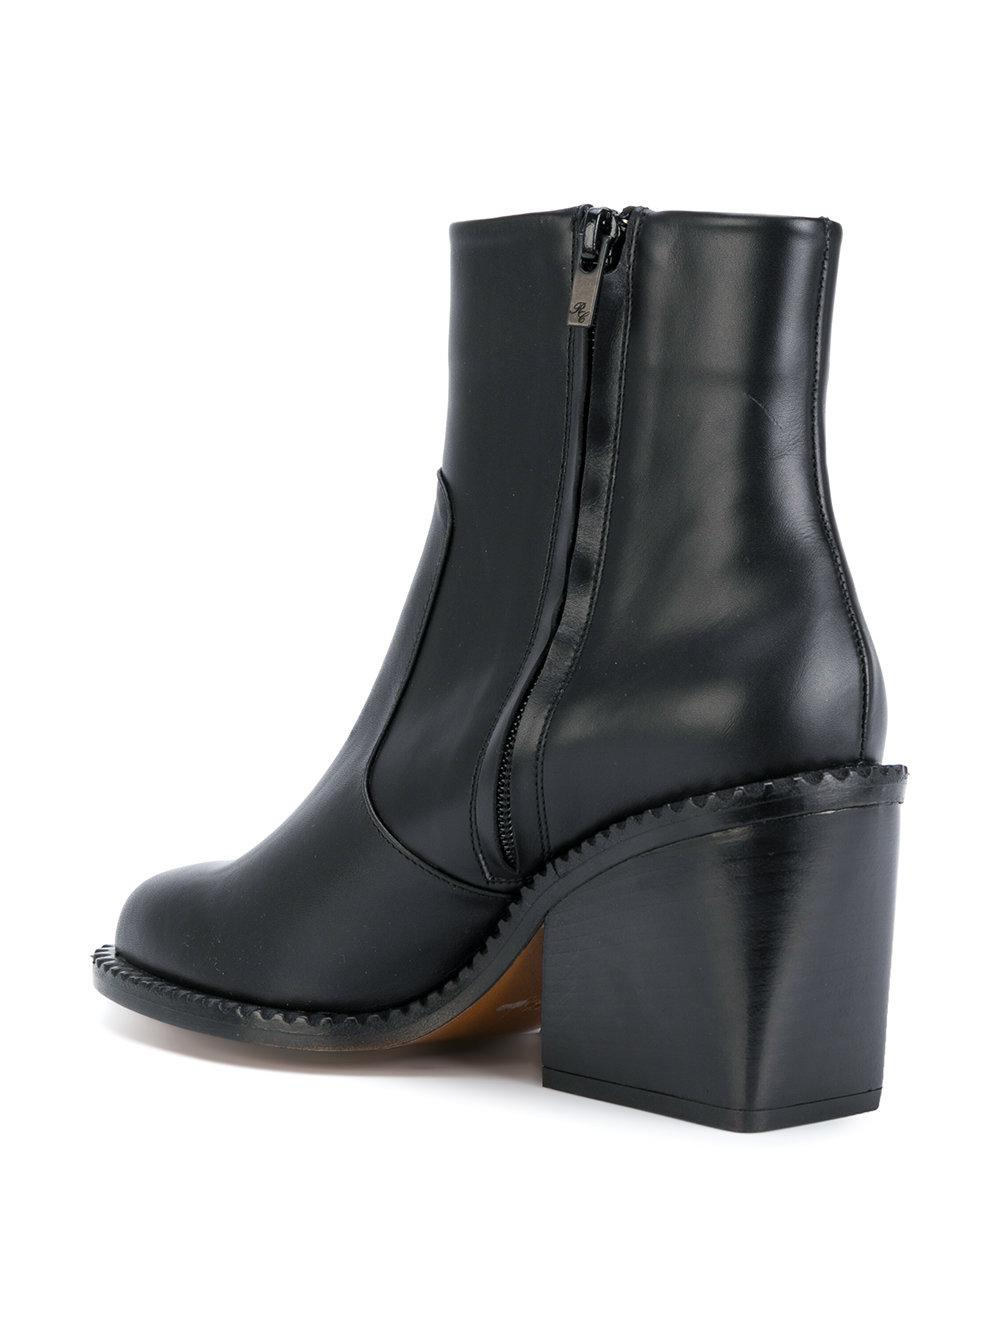 Mayan ankle boots - Black Robert Clergerie JEEreEapG